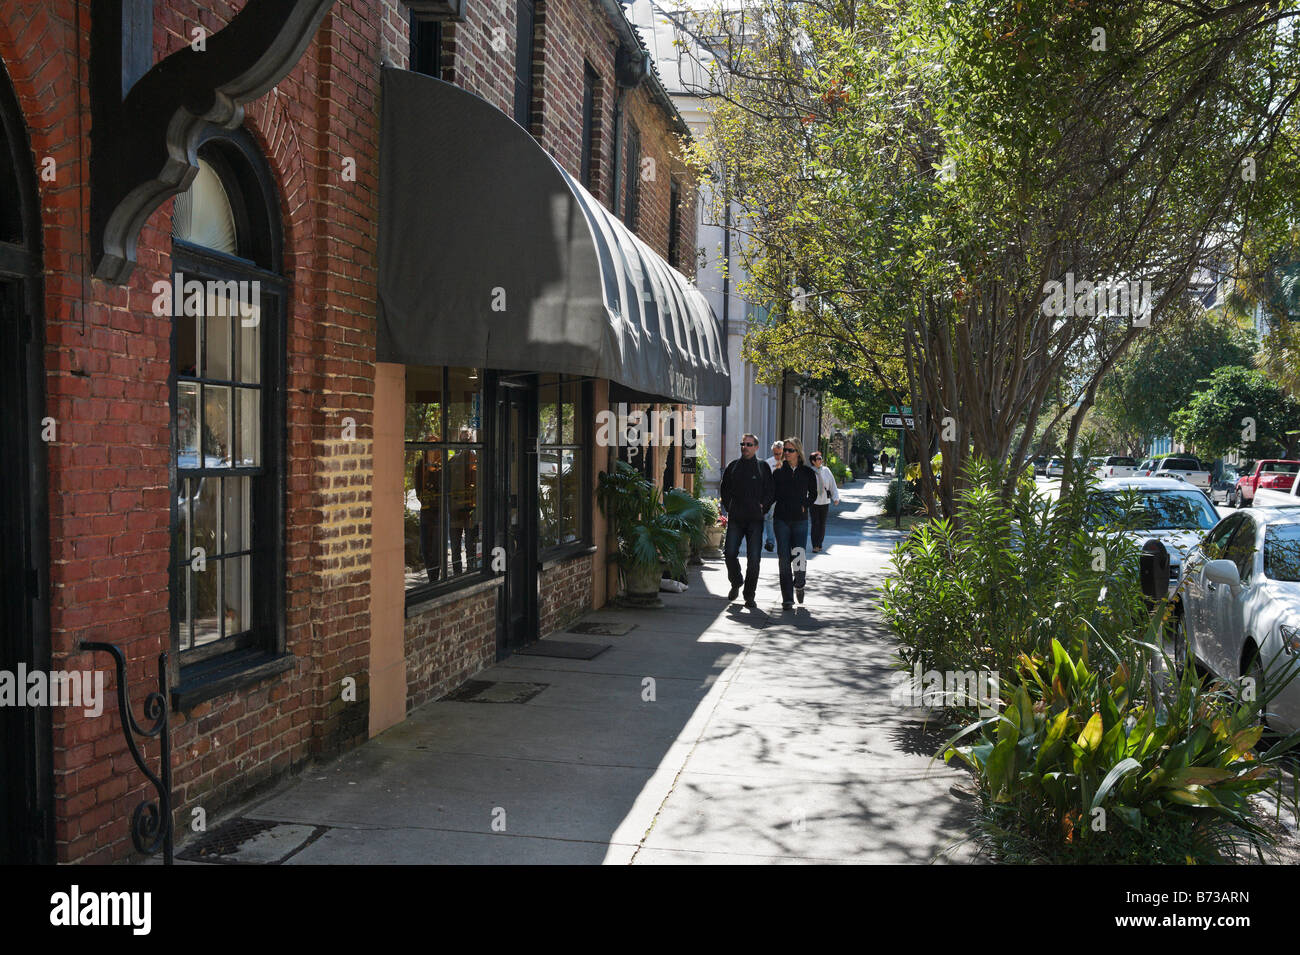 Shops on East Bay Street in the historic district, Charleston, South Carolina, USA - Stock Image